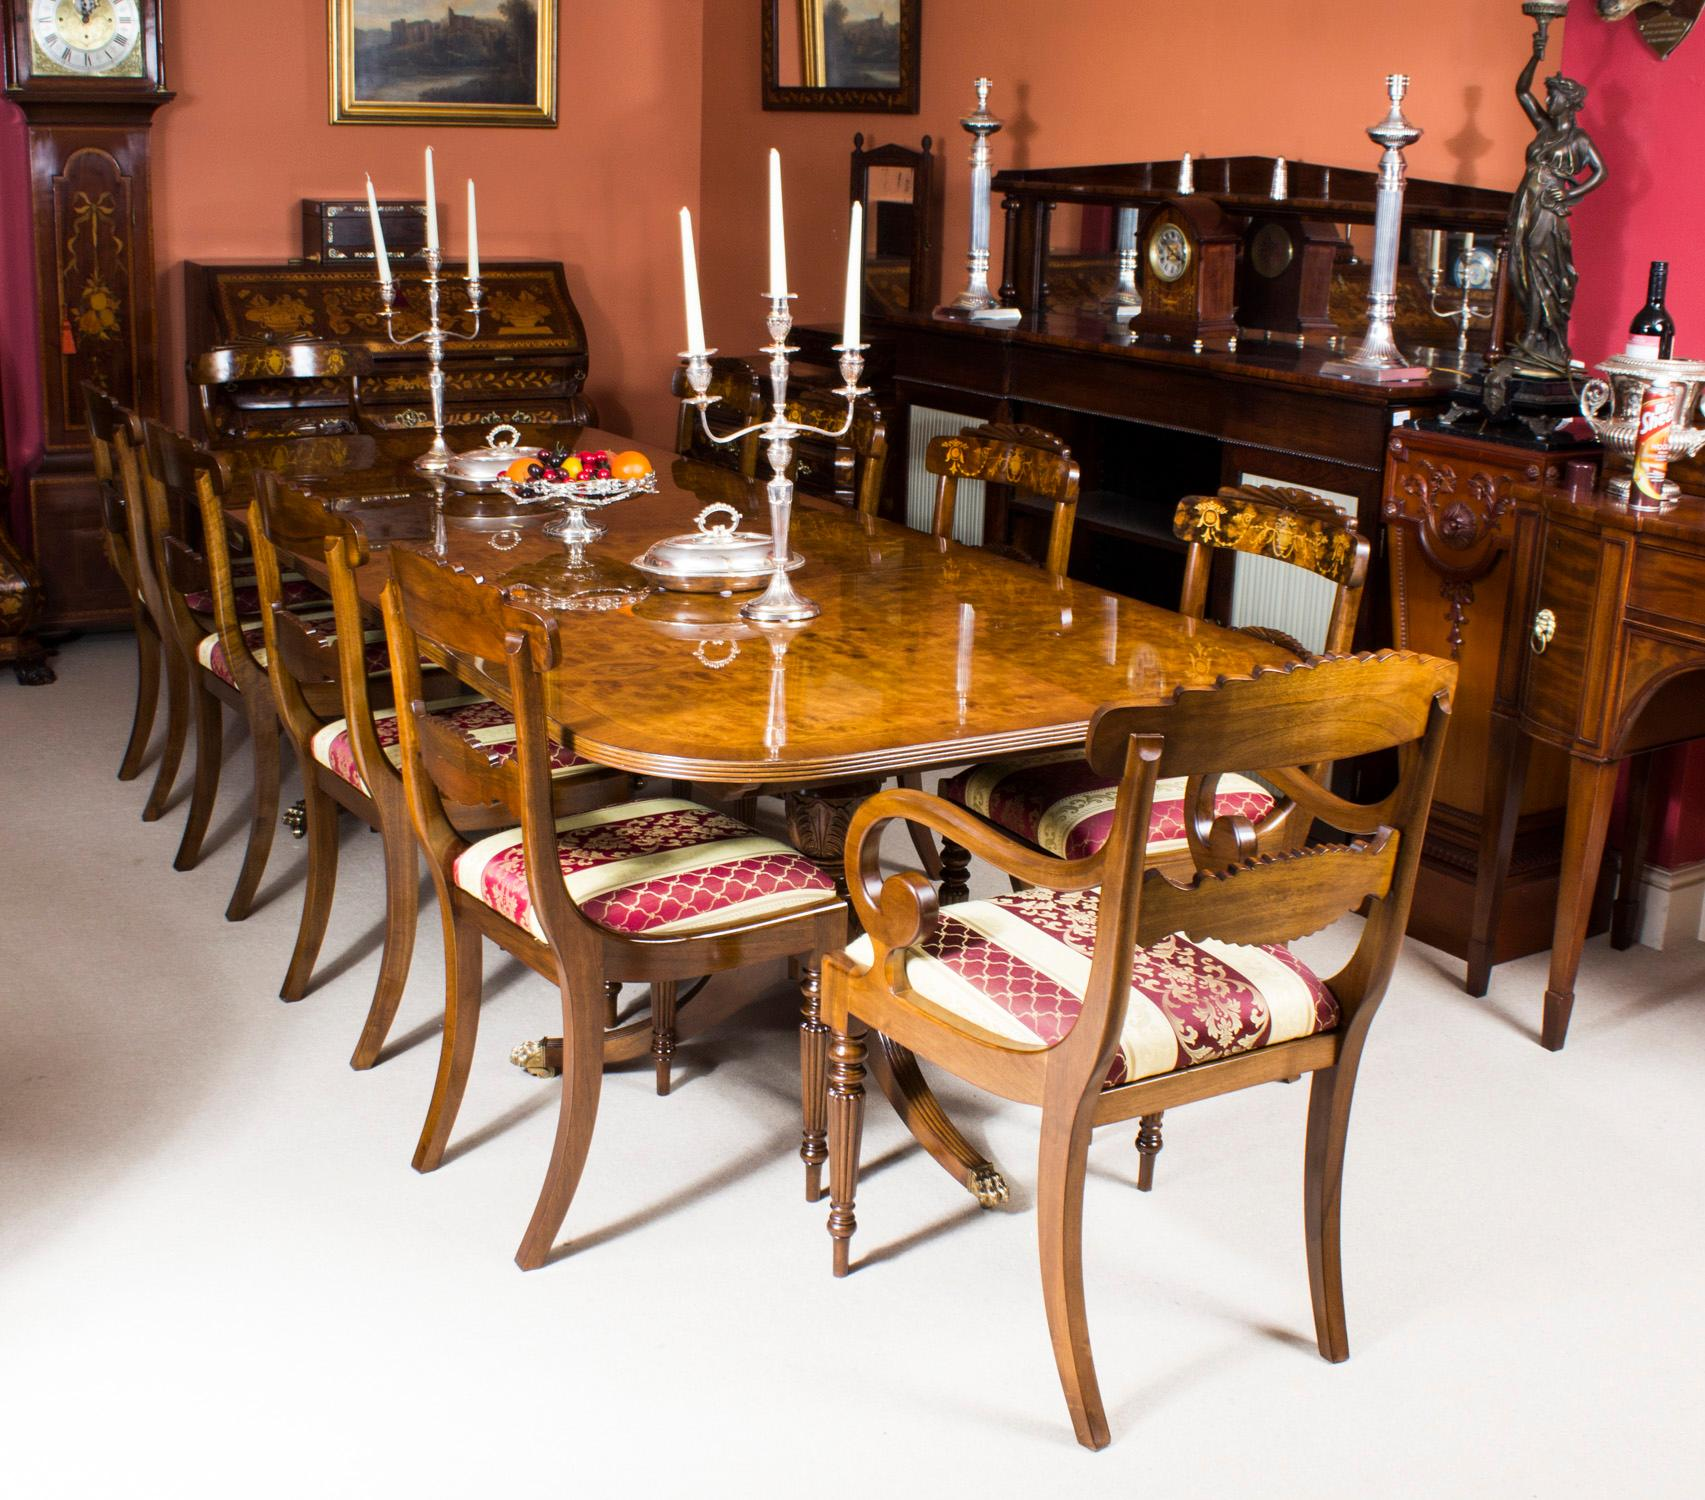 178e2fac5731d Bespoke Burr Walnut Regency Style Twin Pillar Dining Table and Ten Chairs  For Sale at 1stdibs